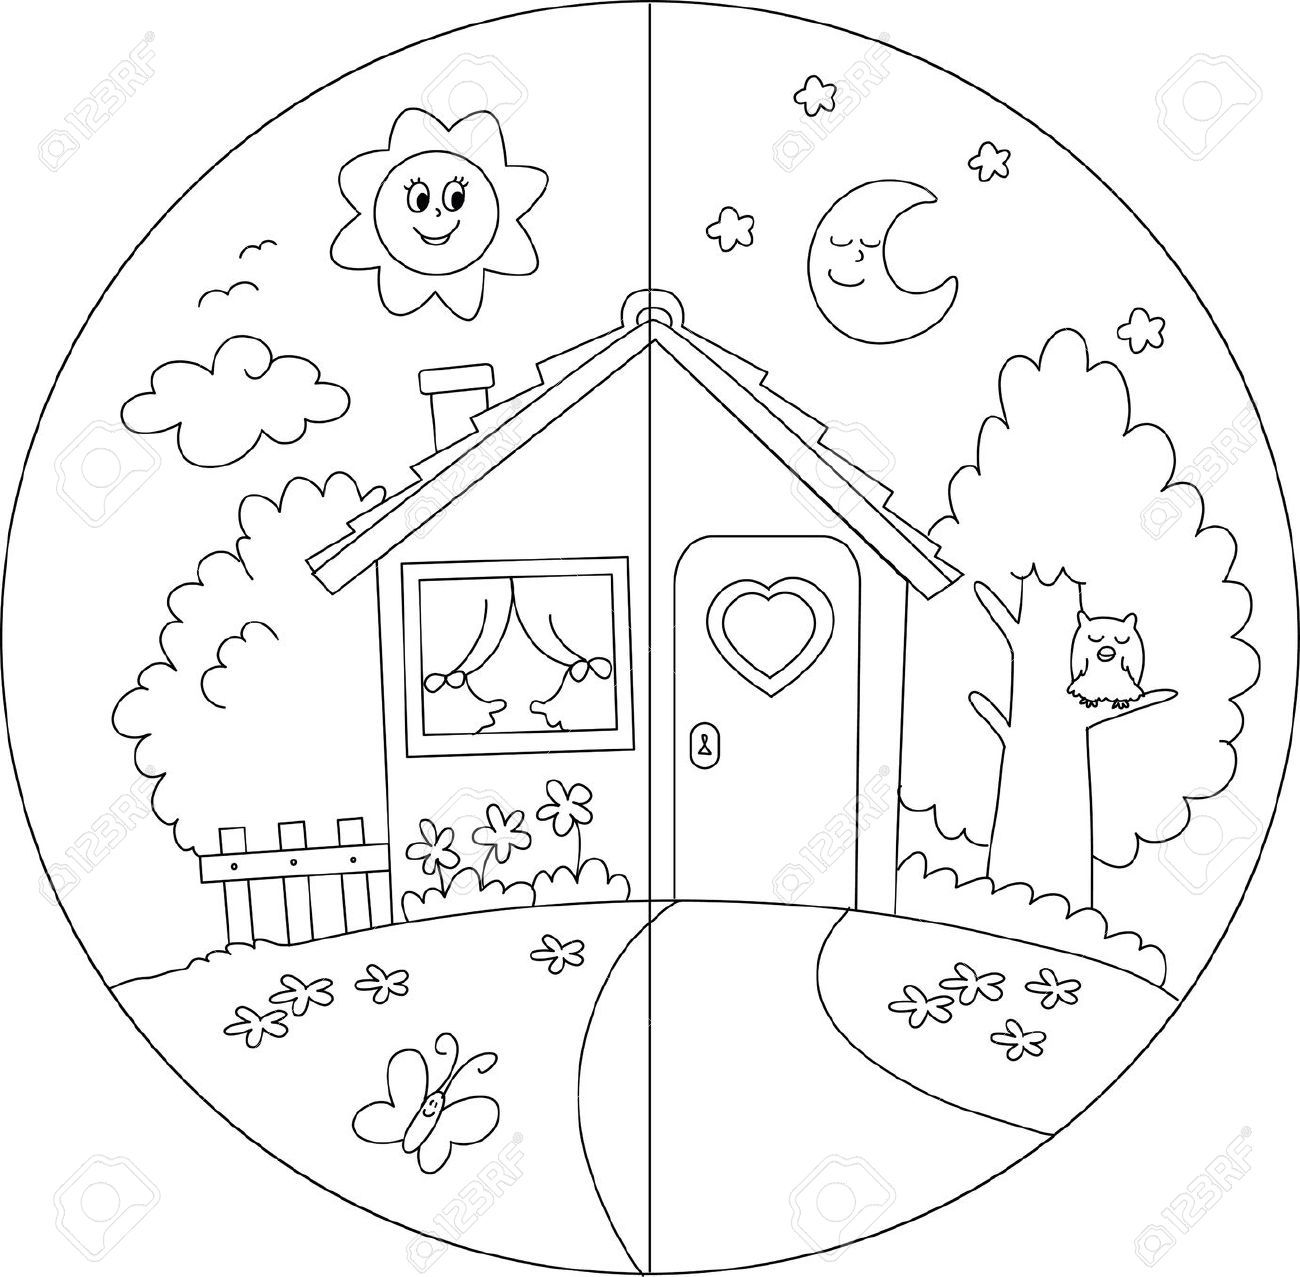 free night coloring pages - photo#18